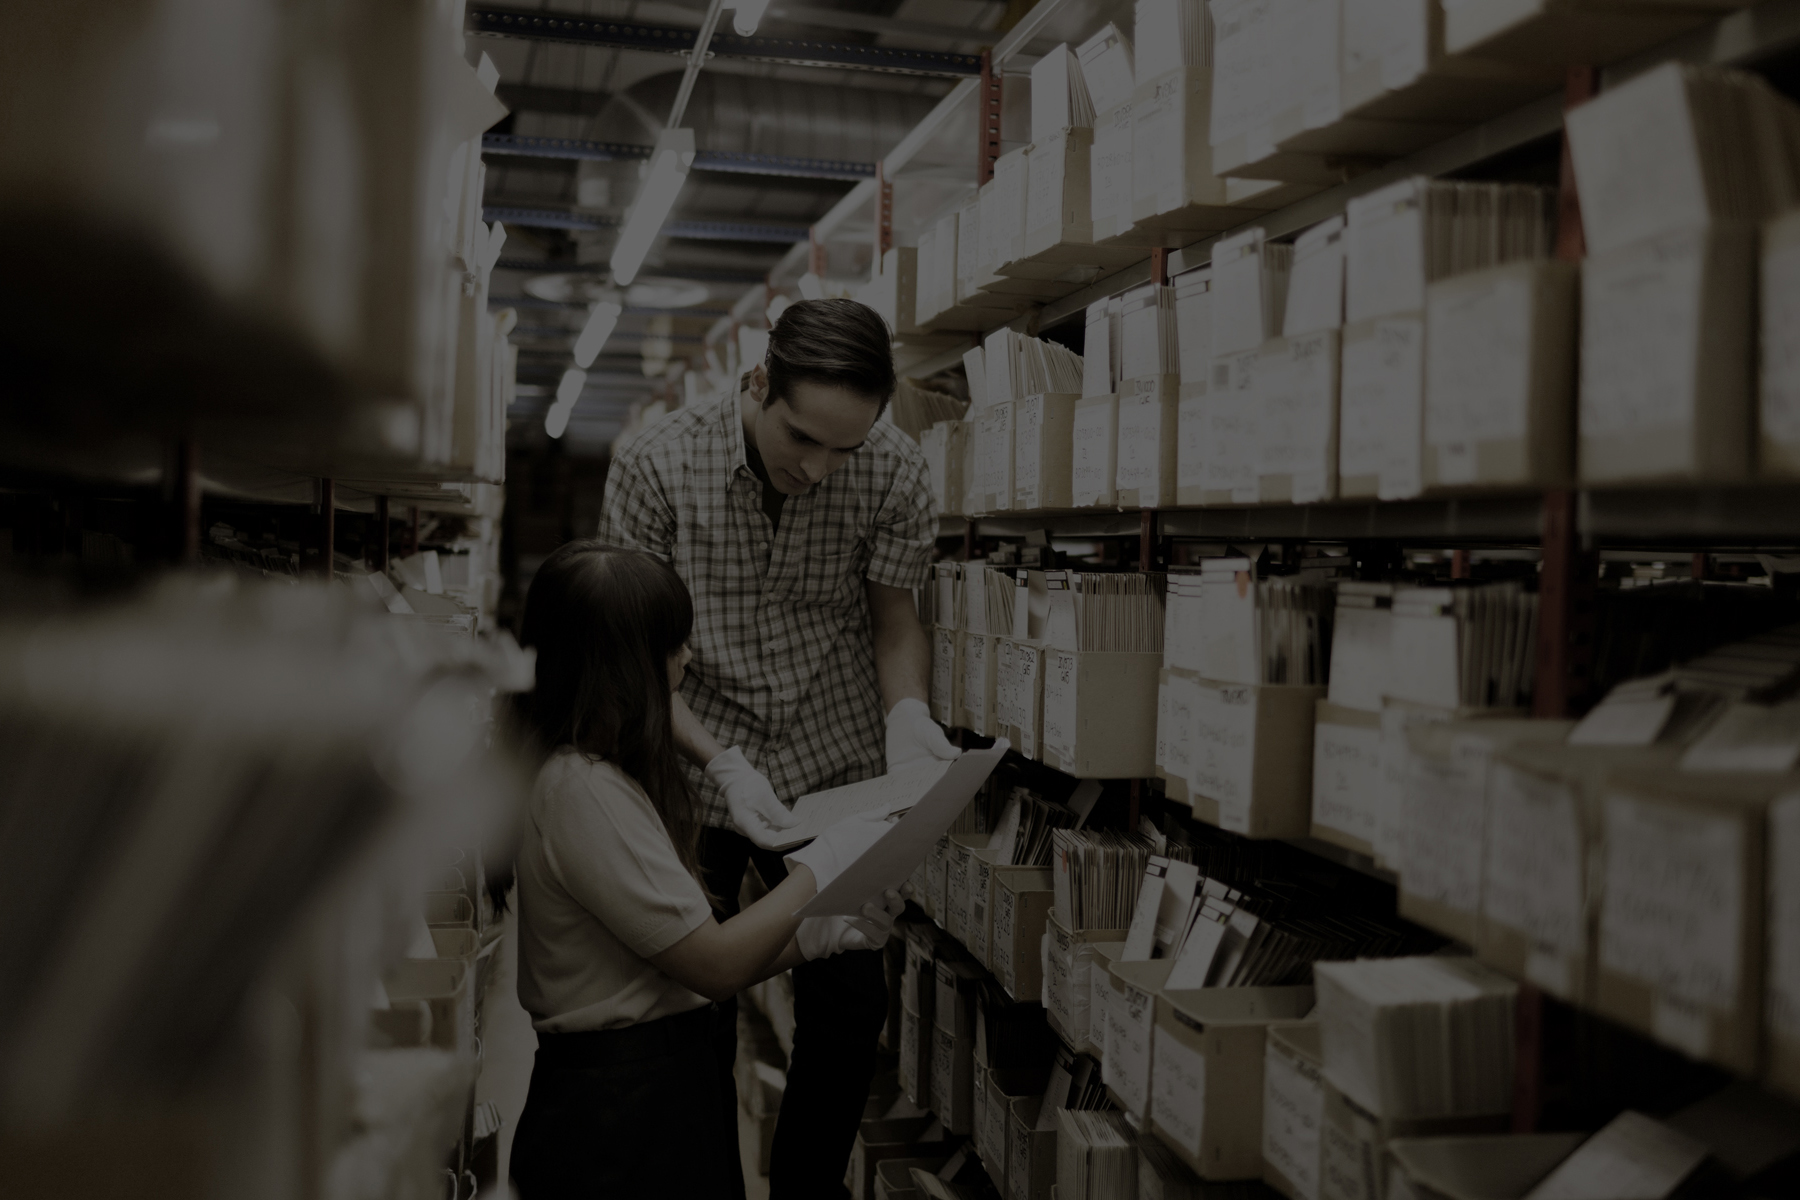 Press Release: LYRASIS Announces Christine Di Bella as New Program Manager for ArchivesSpace